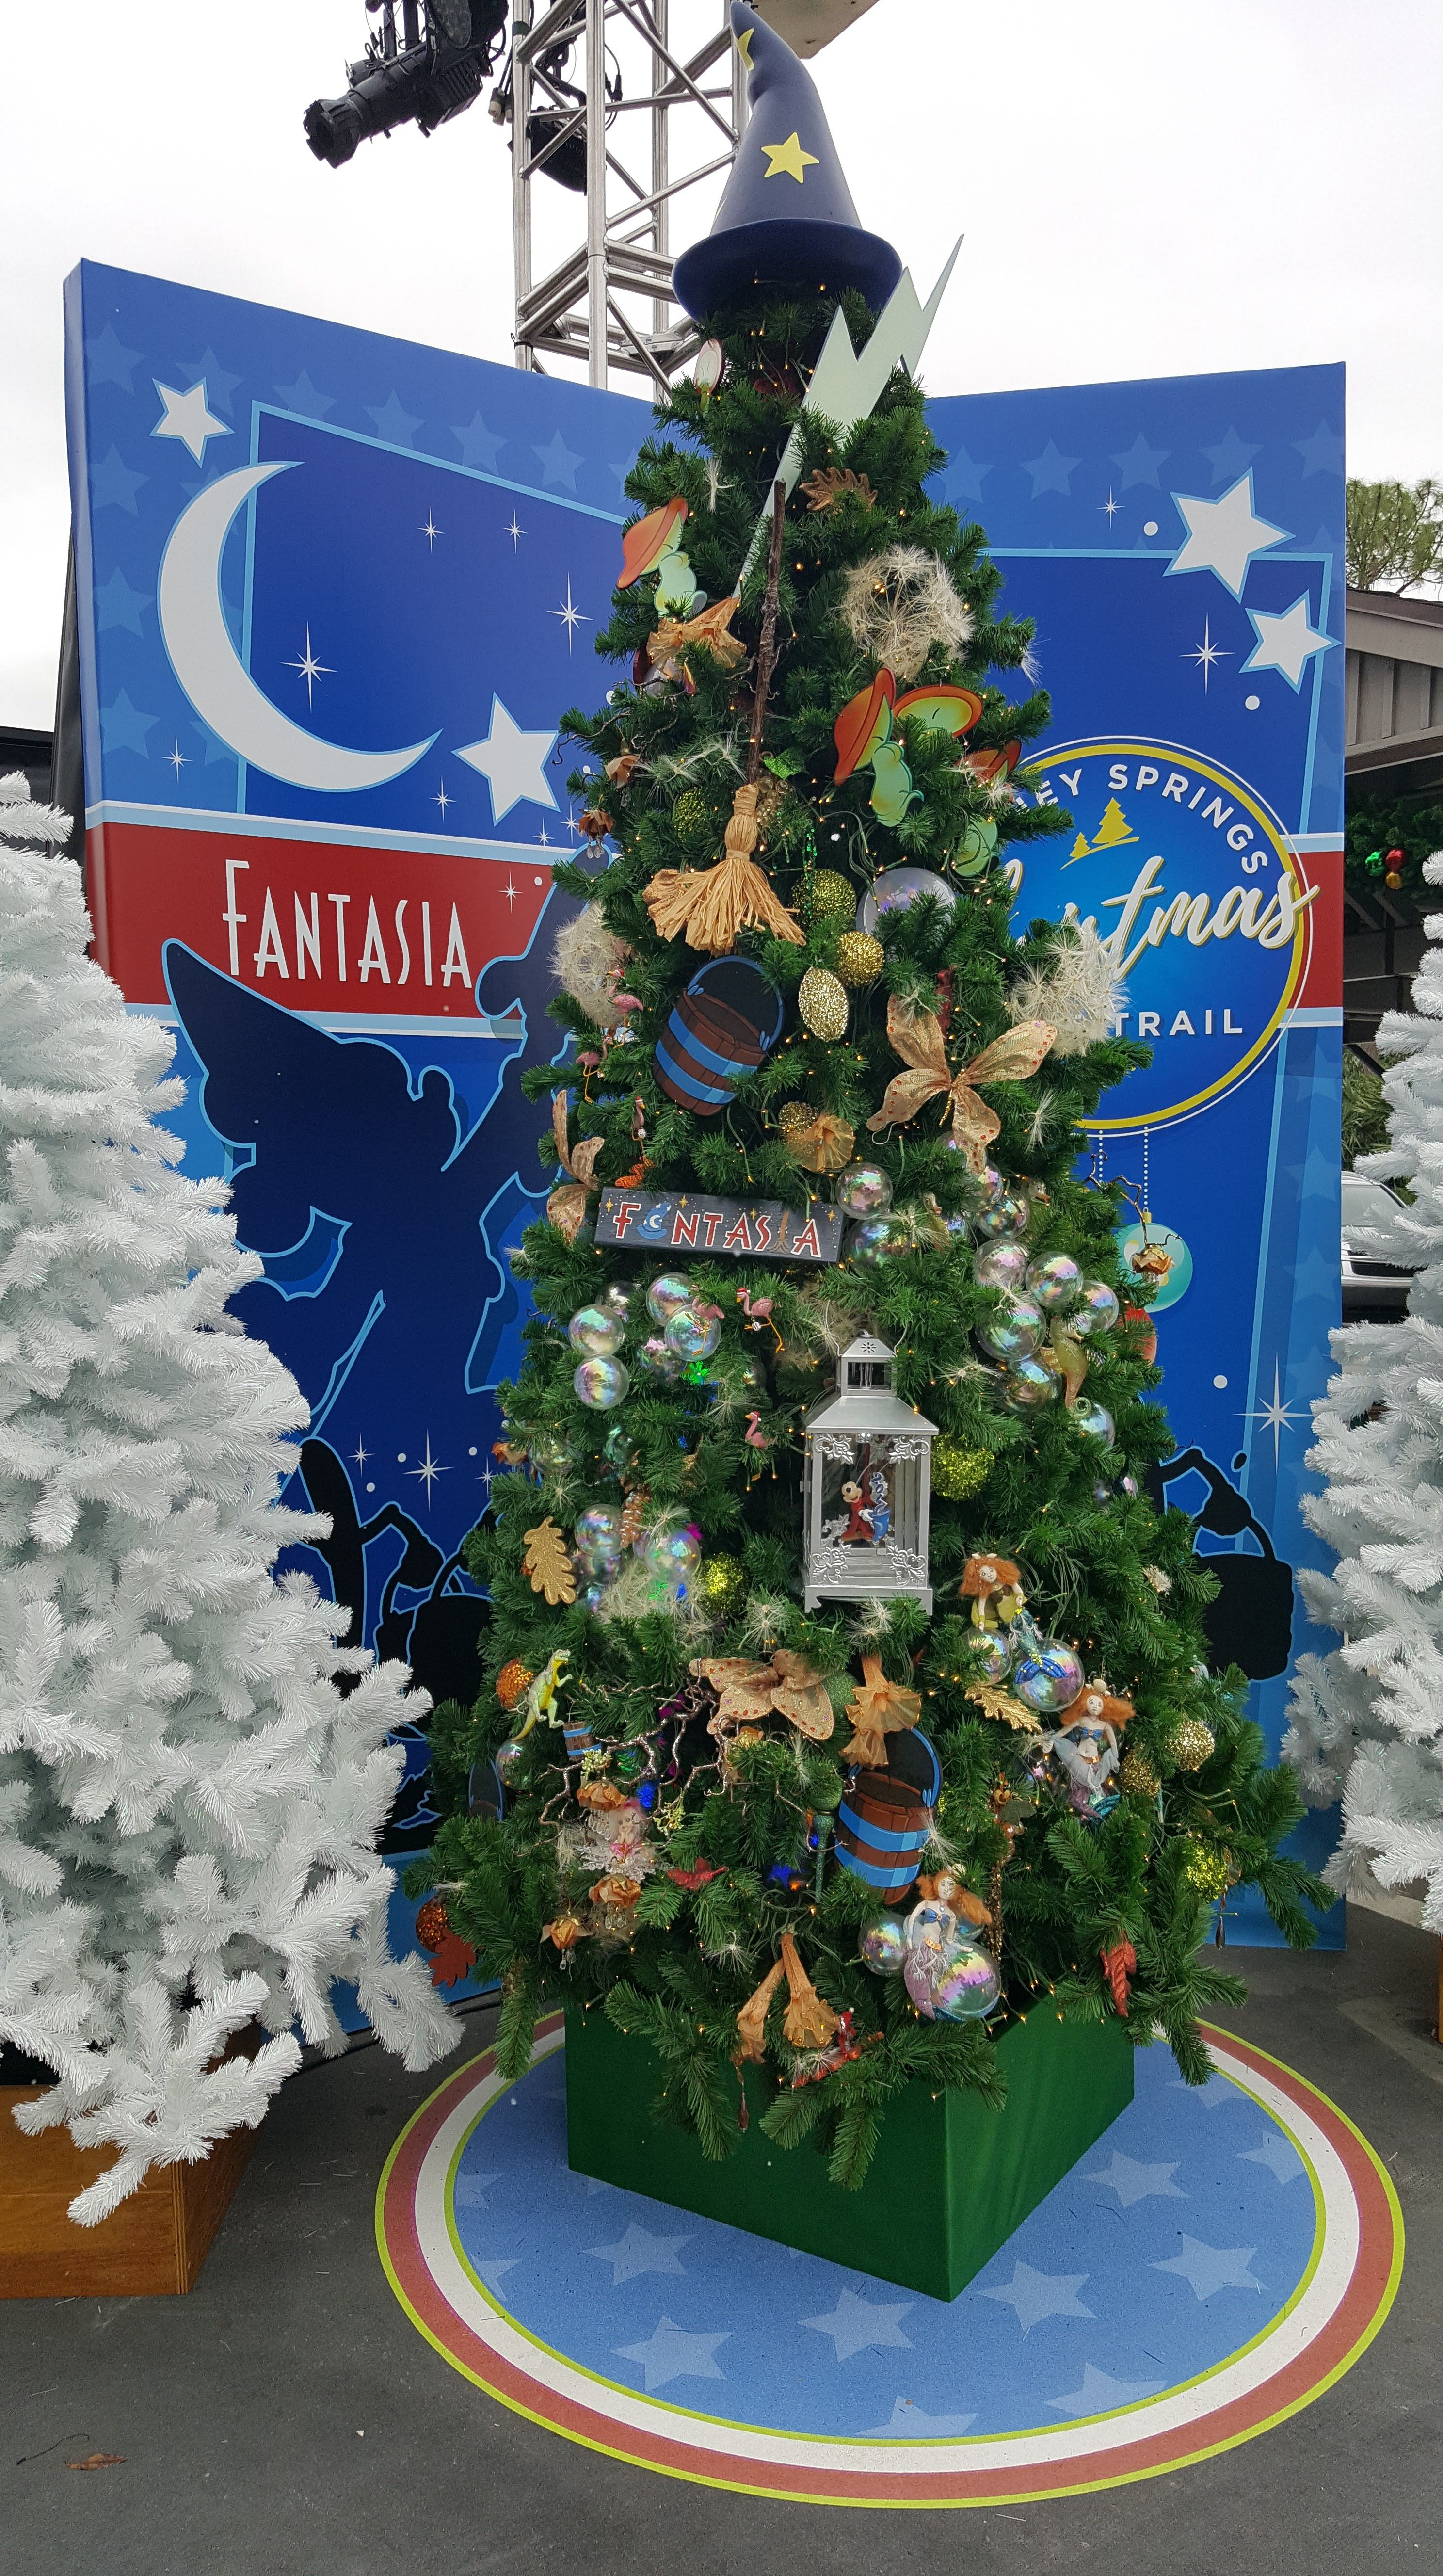 the disney springs christmas tree trail brings merriment to shopping